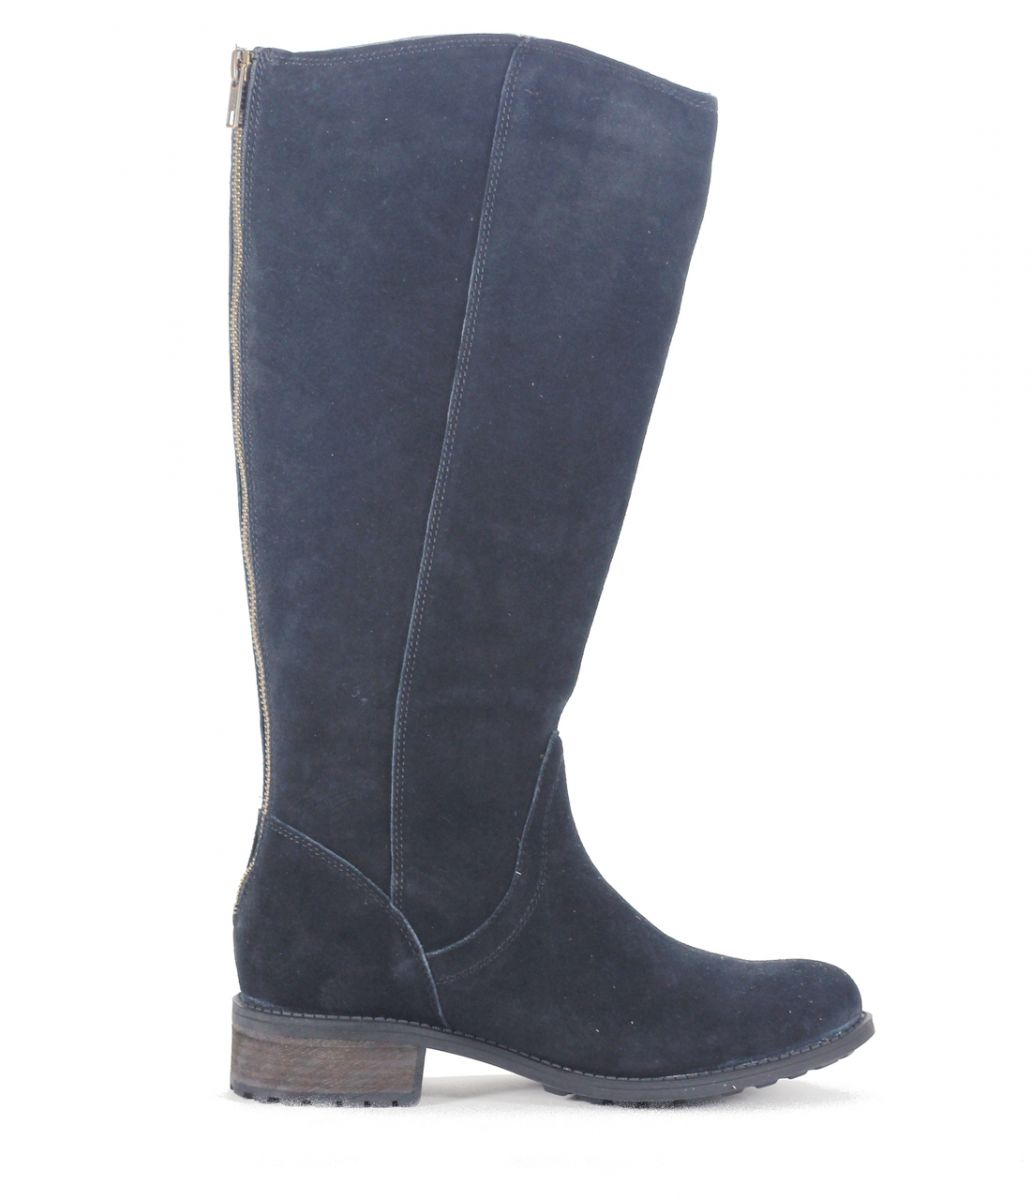 f2c25eb3dd2 UGG Australia for Women  Seldon Black Suede Tall Boot BLACK. Special Price   160.99 Regular Price  200.00